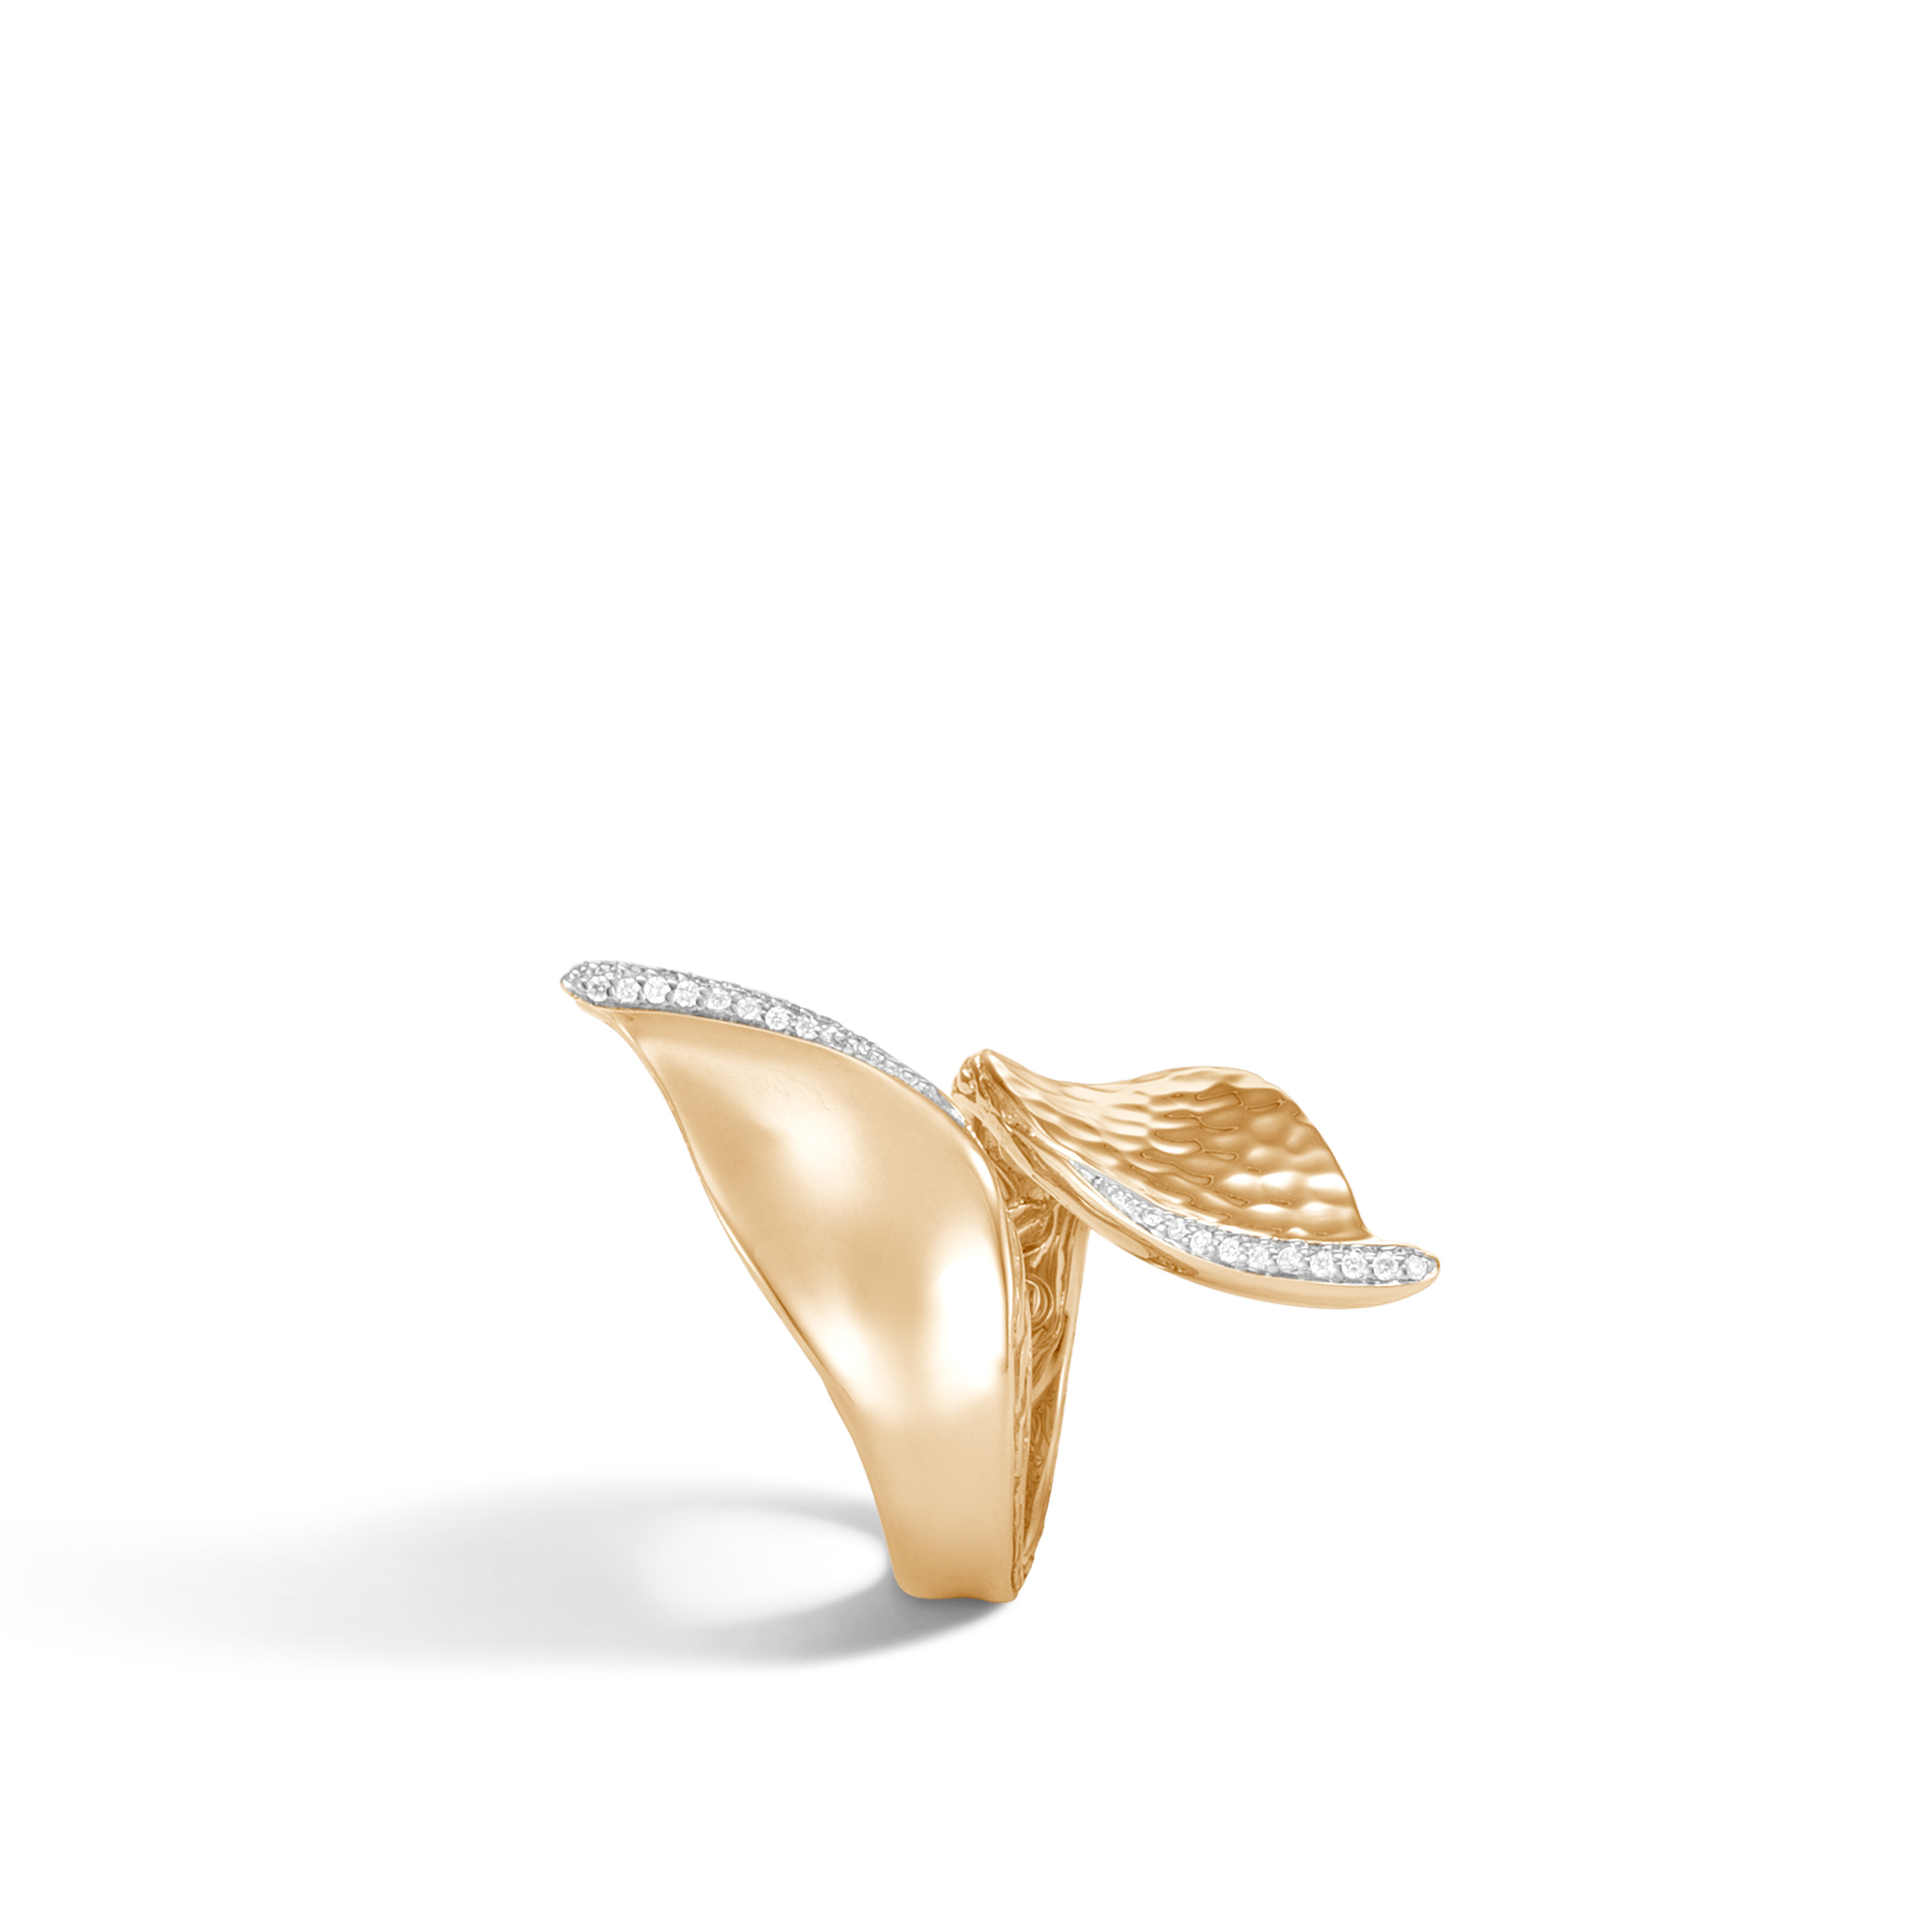 Classic Chain Wave Bypass Ring, Hammered 18K Gold, Diamonds, White Diamond, large